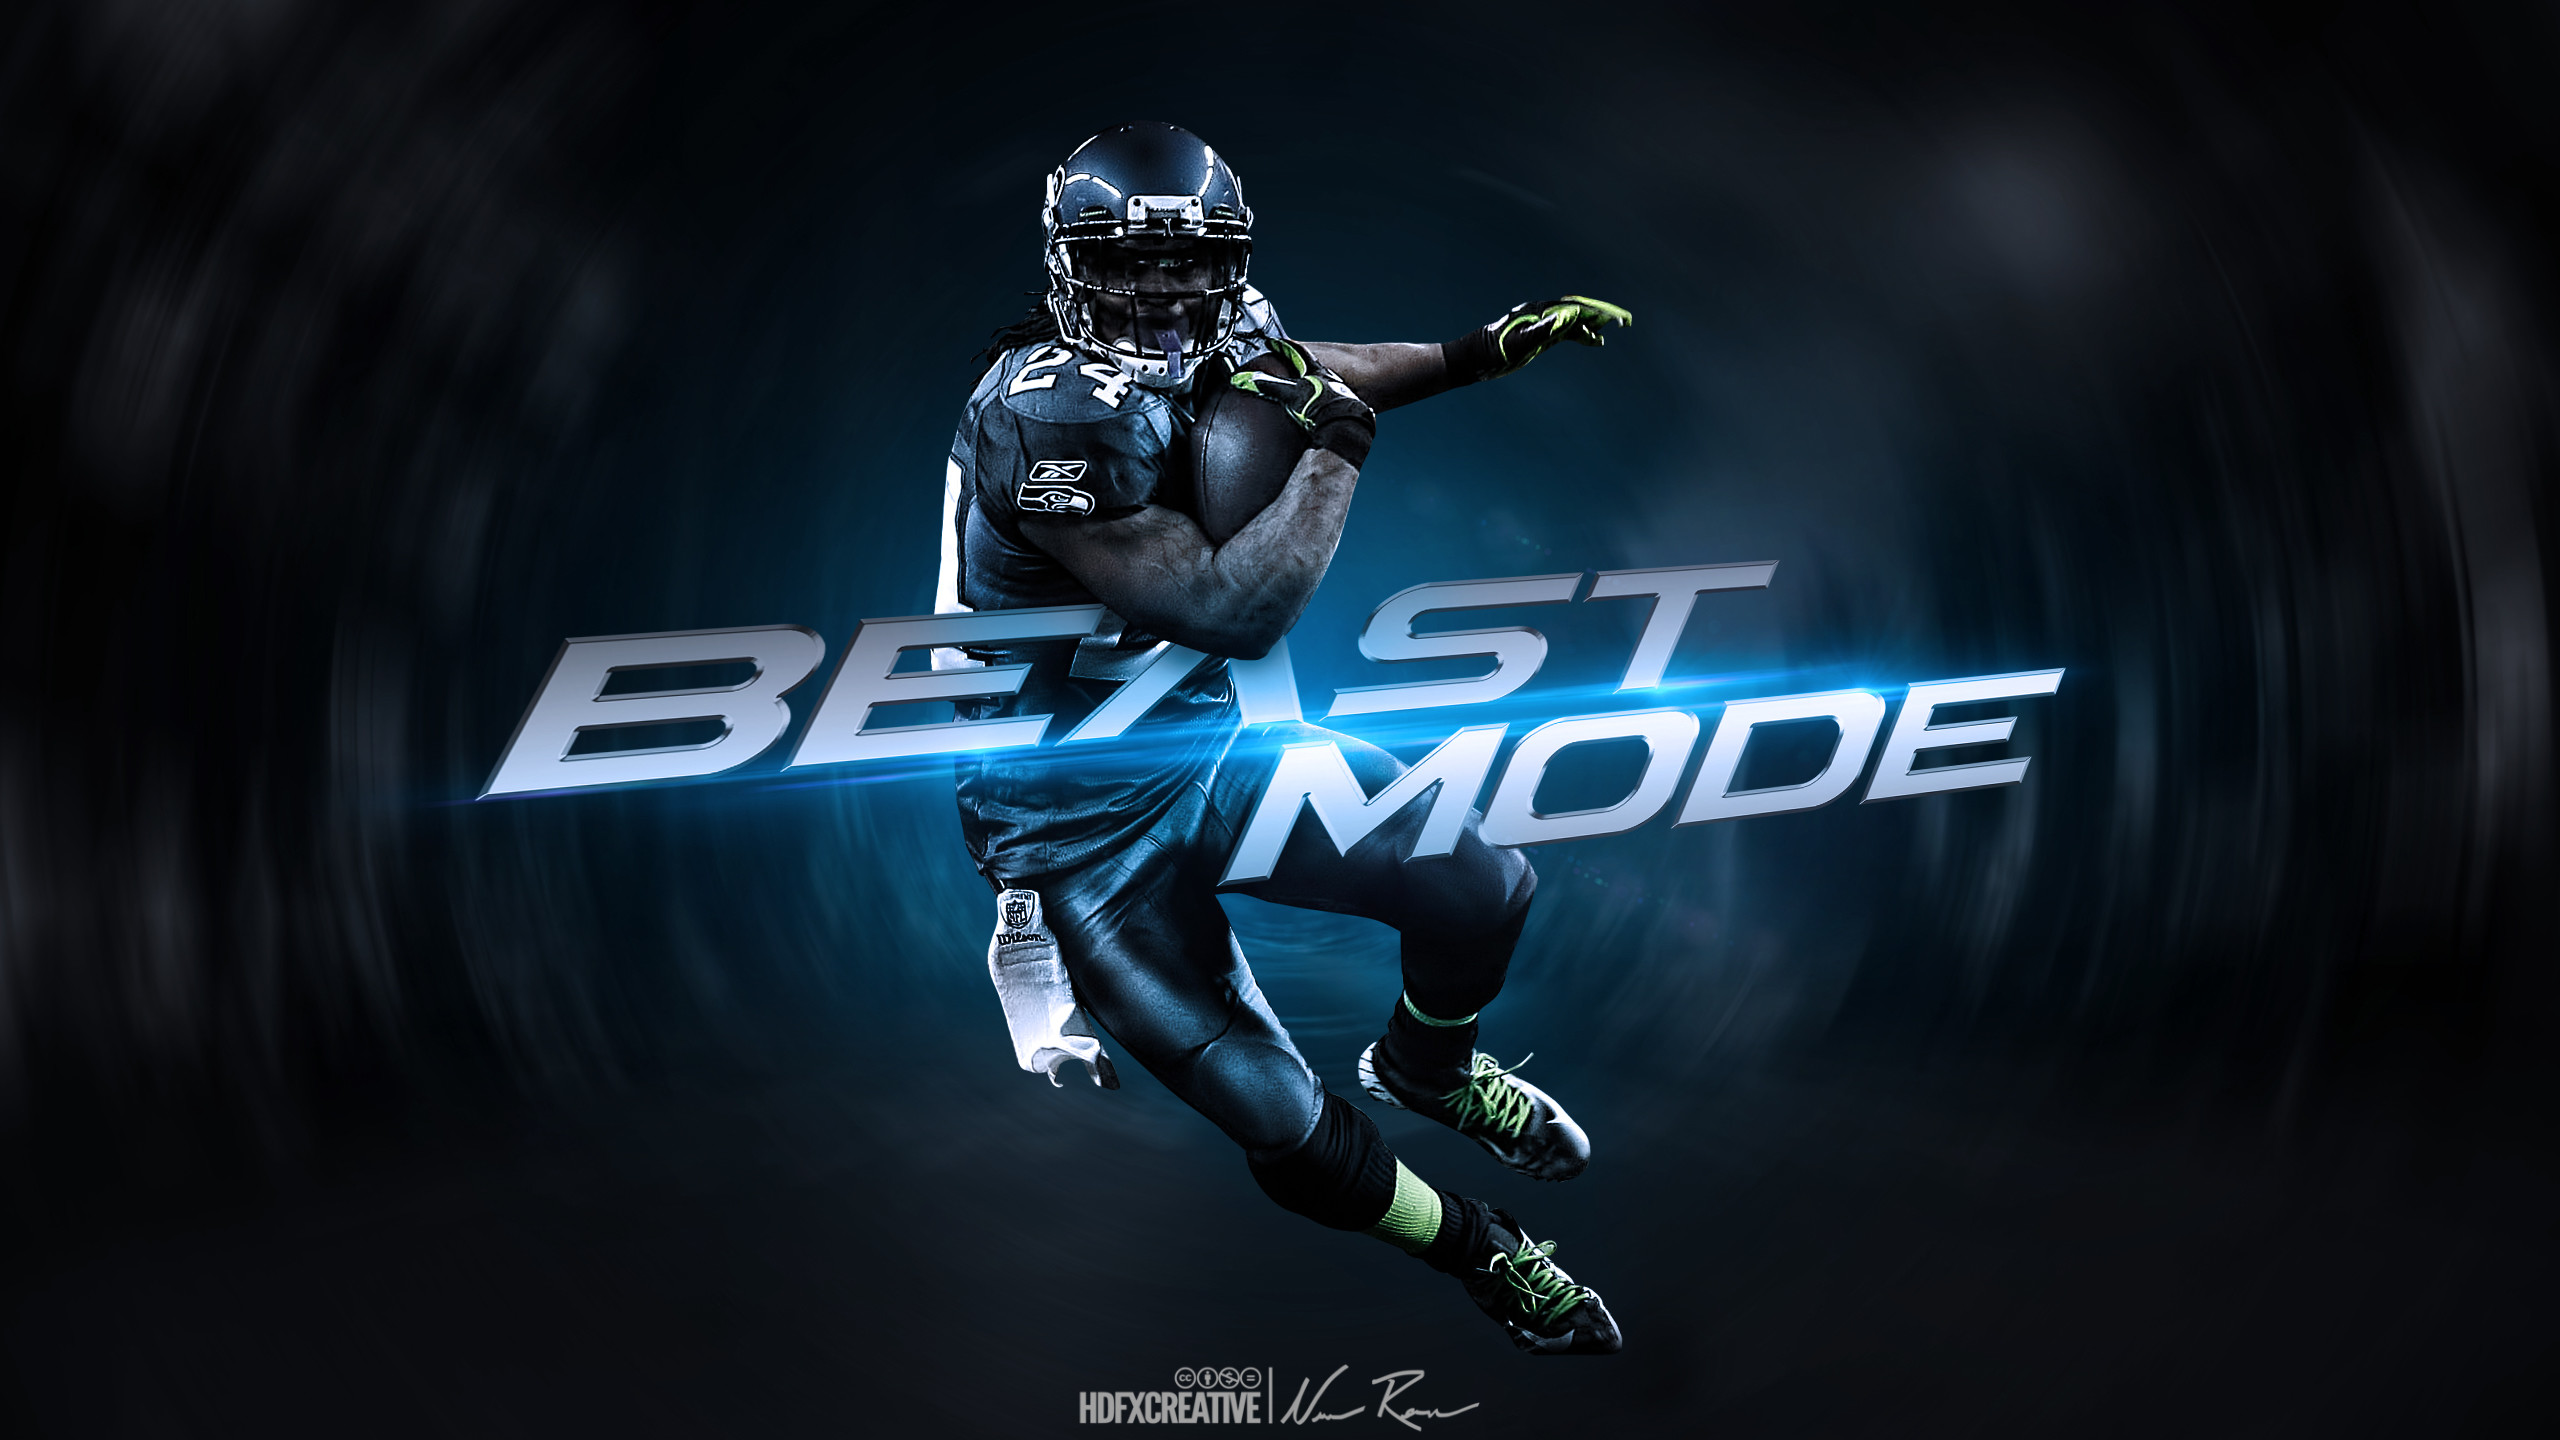 2048x1462 Seahawks Wallpapers Free